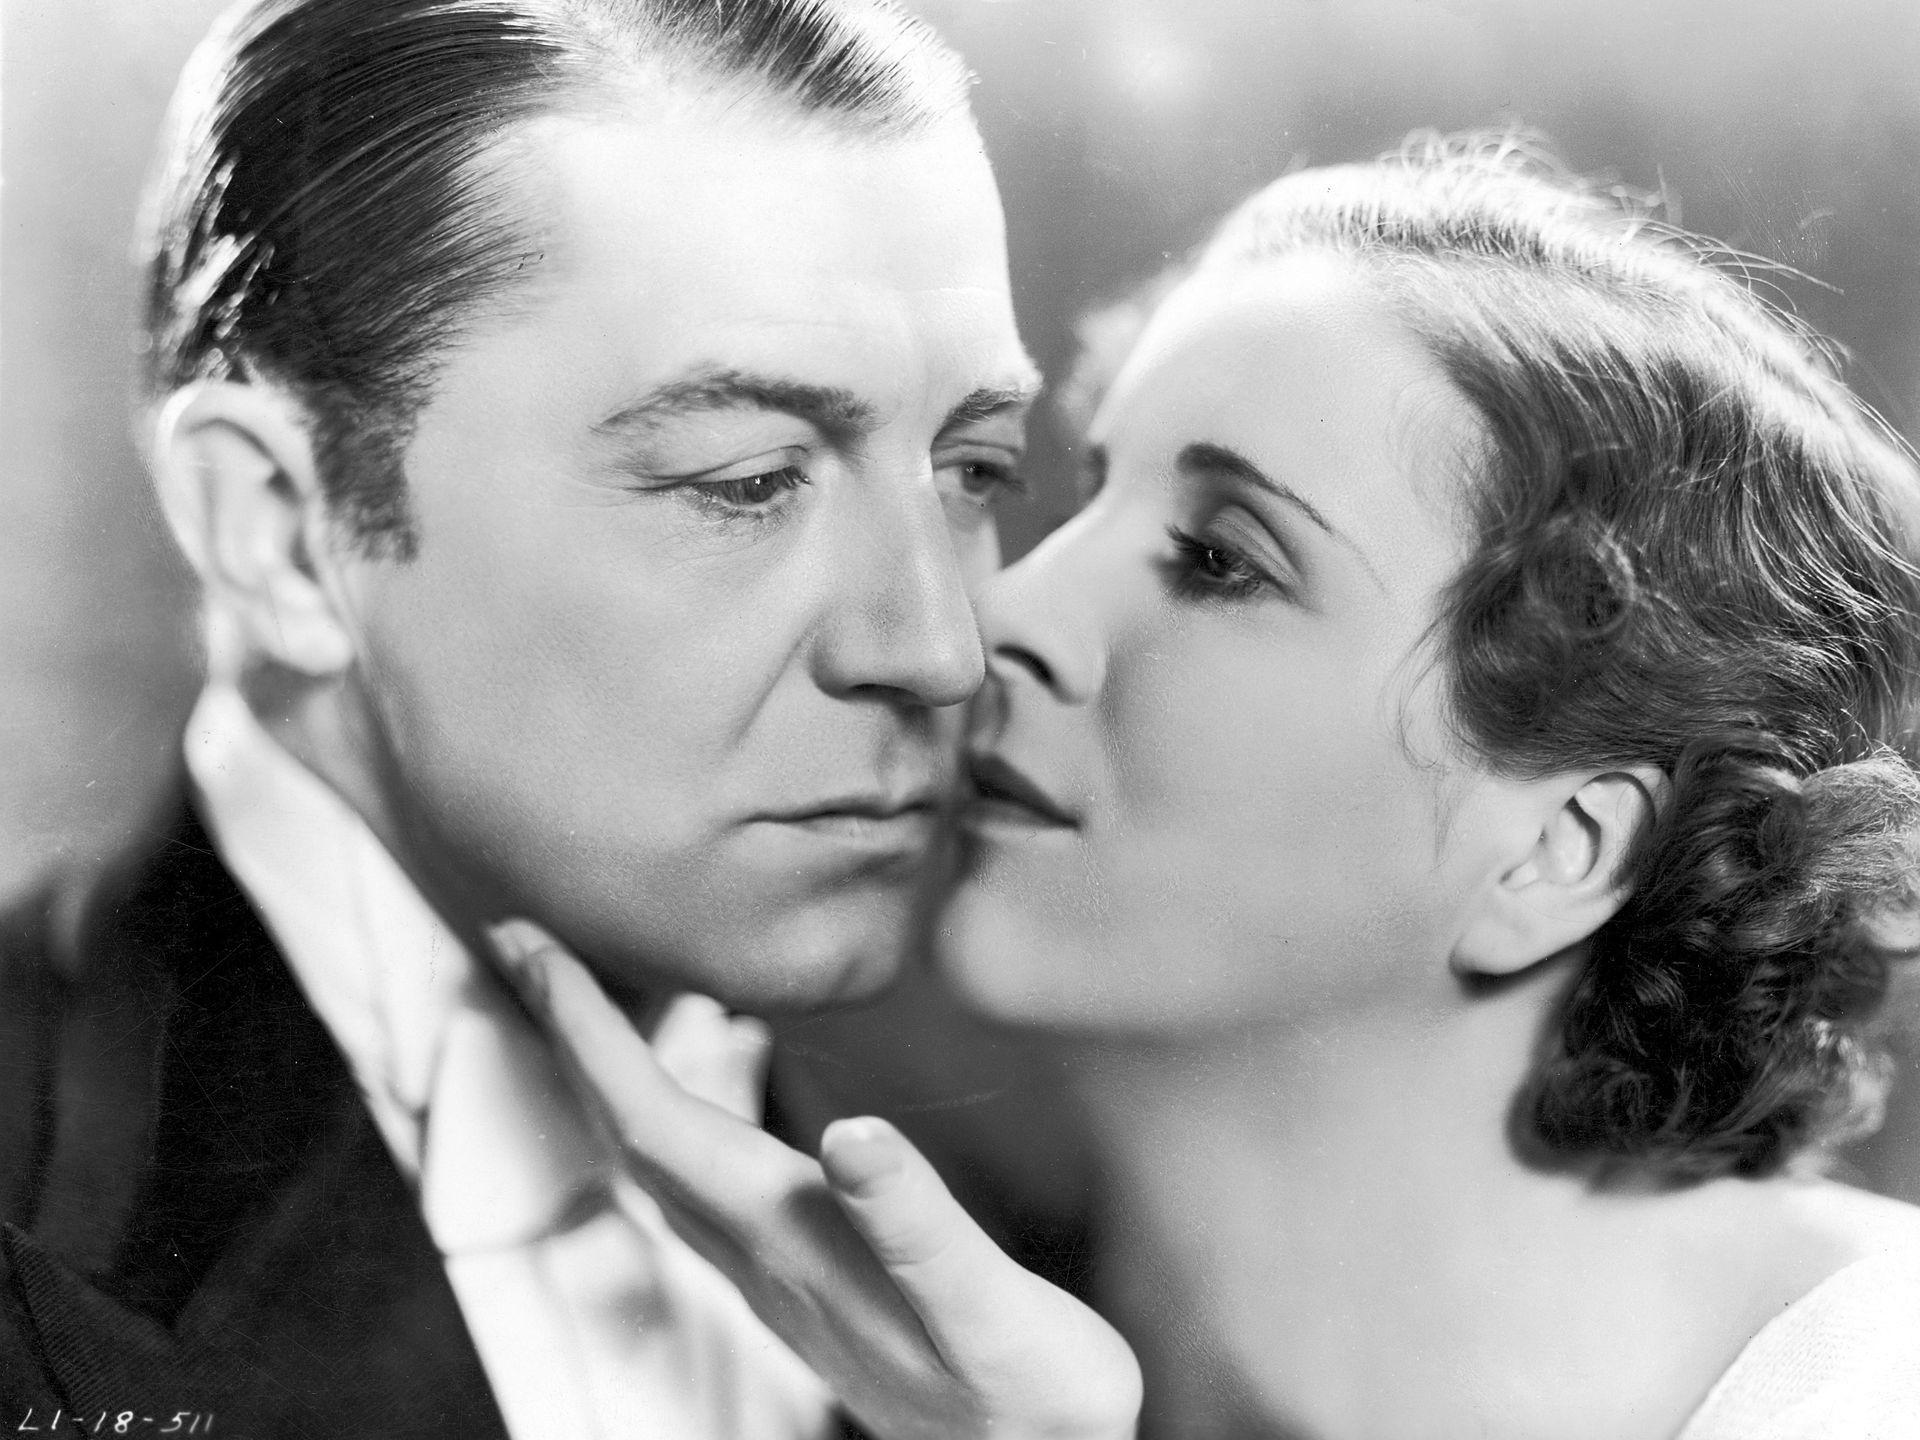 1932/1933 - 'Cavalcade' | The film, starring Clive Brook and Diana Wynyard, touched on historic events like the sinking of the Titanic and the death of Queen Victoria in a look at Londoners from 1899 through 1933.